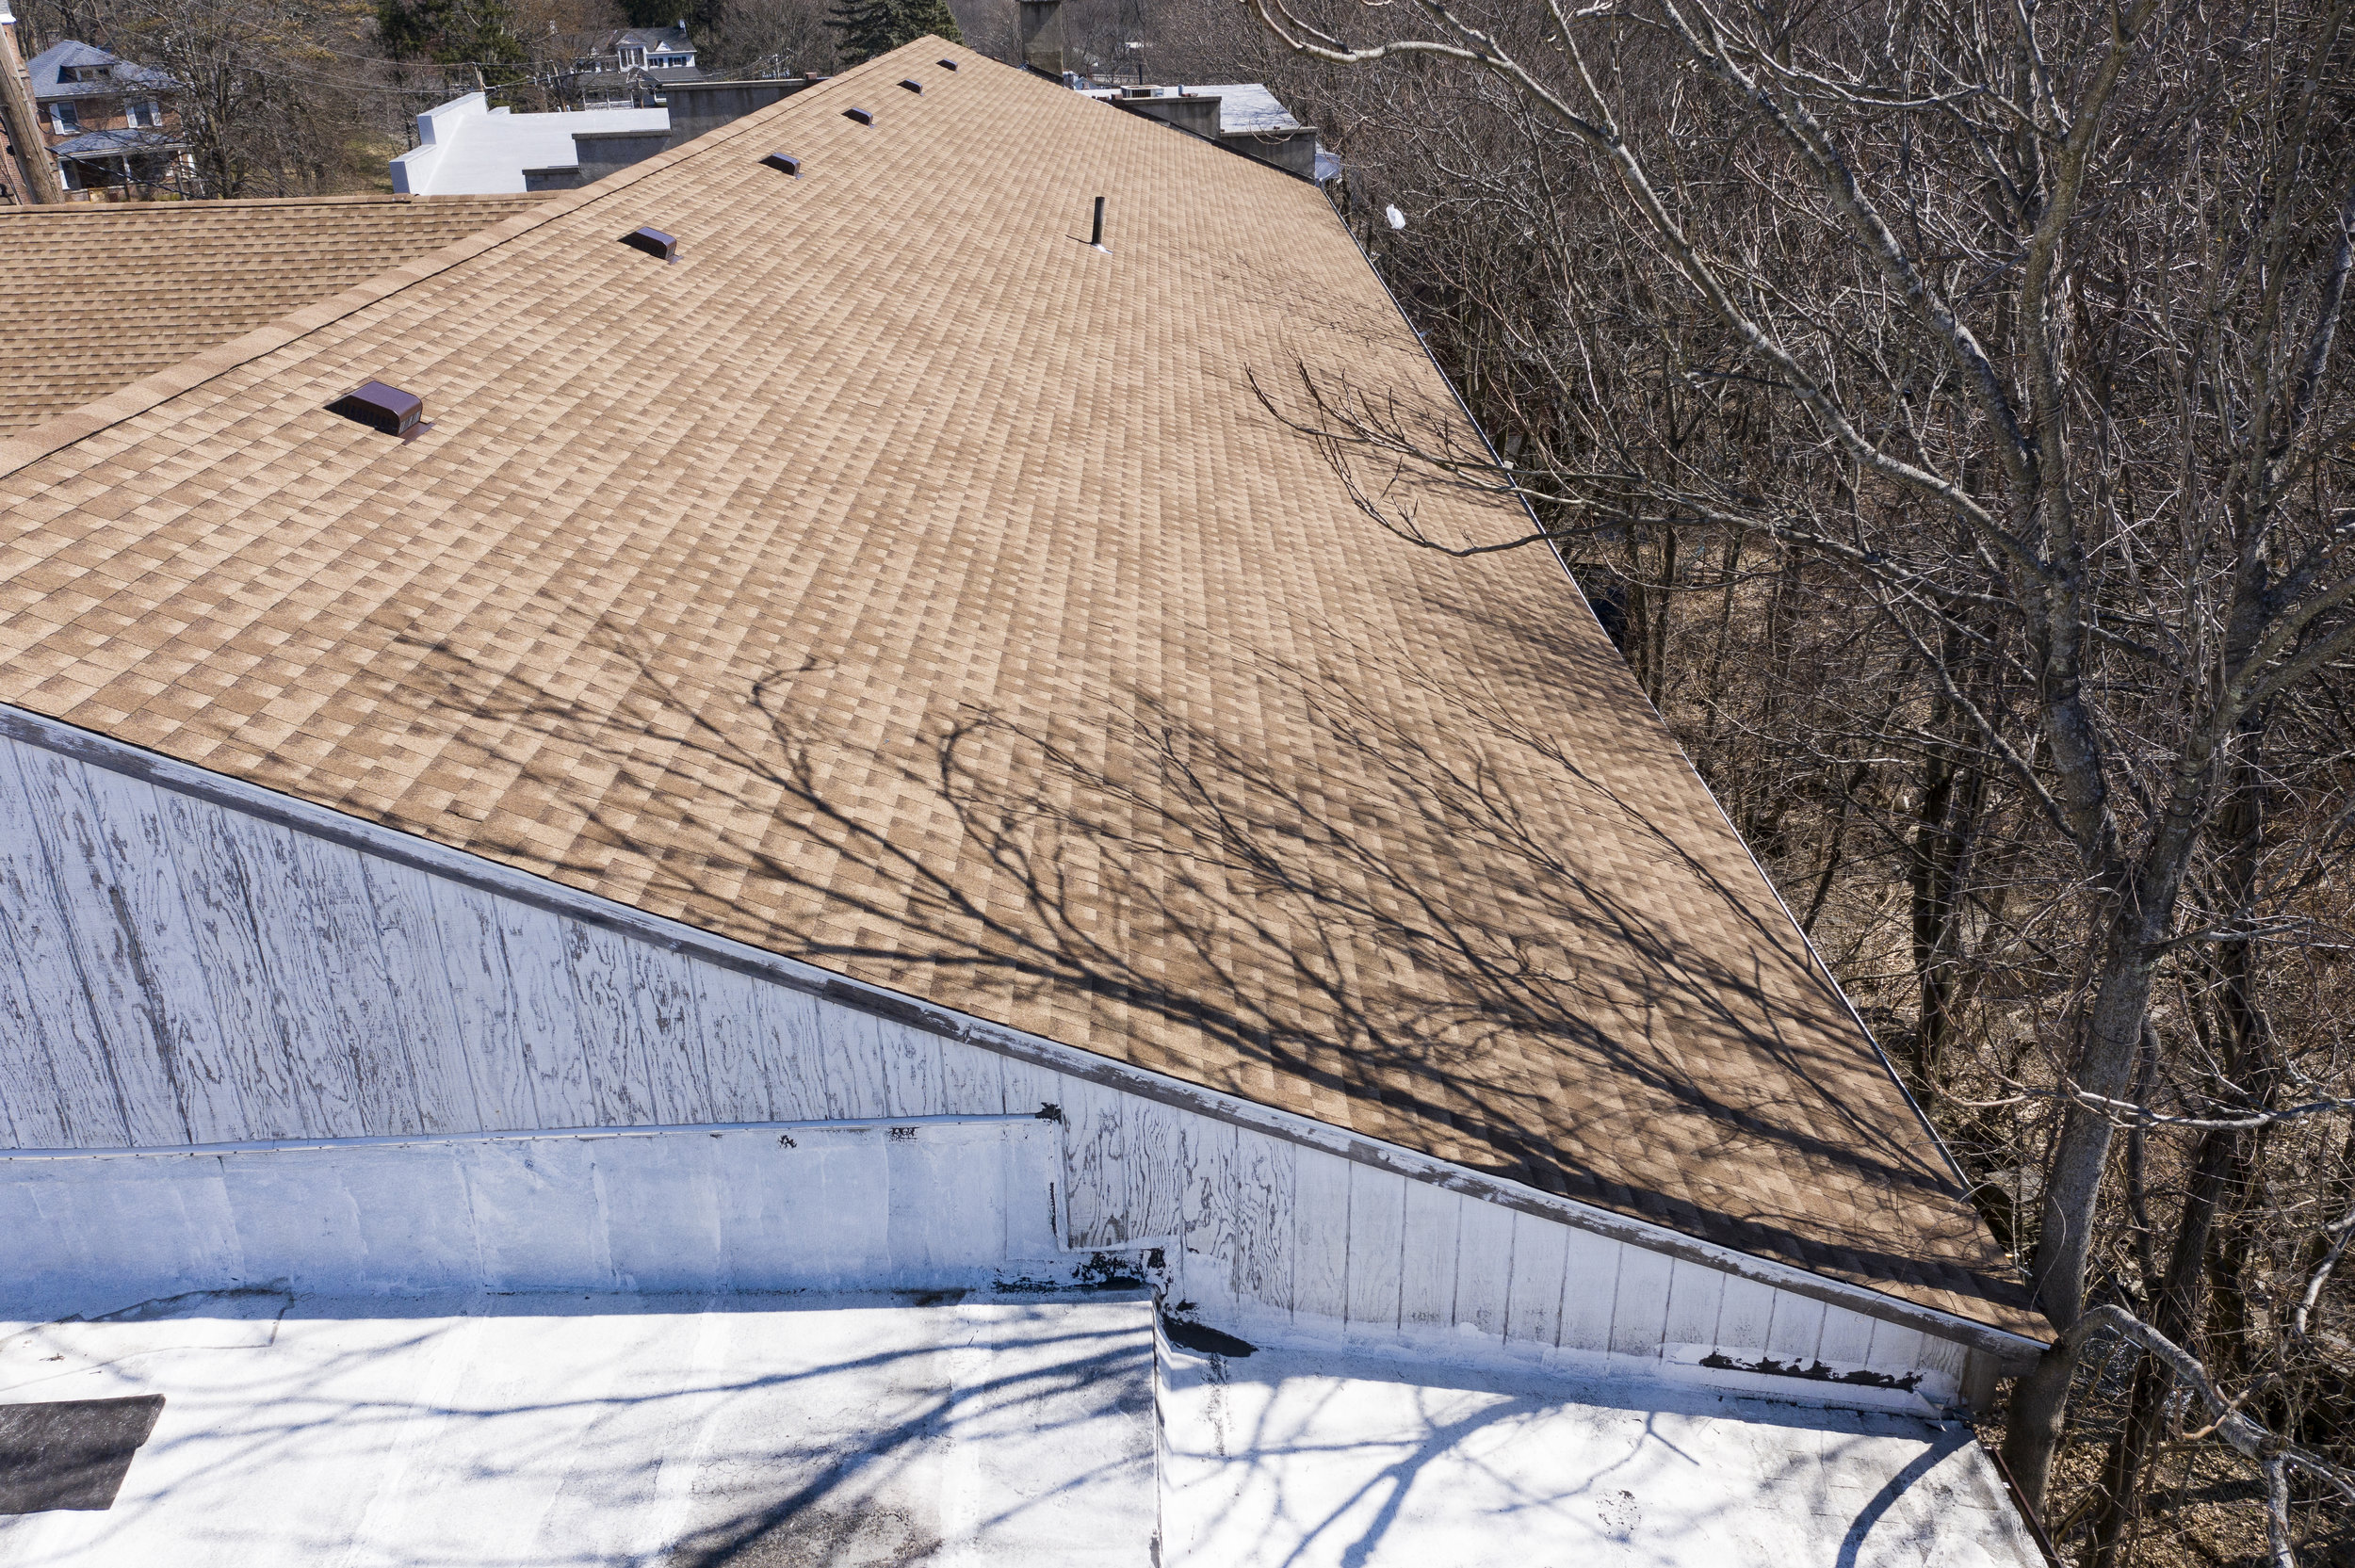 - Code violation: trees in contact with roof edge and gutters